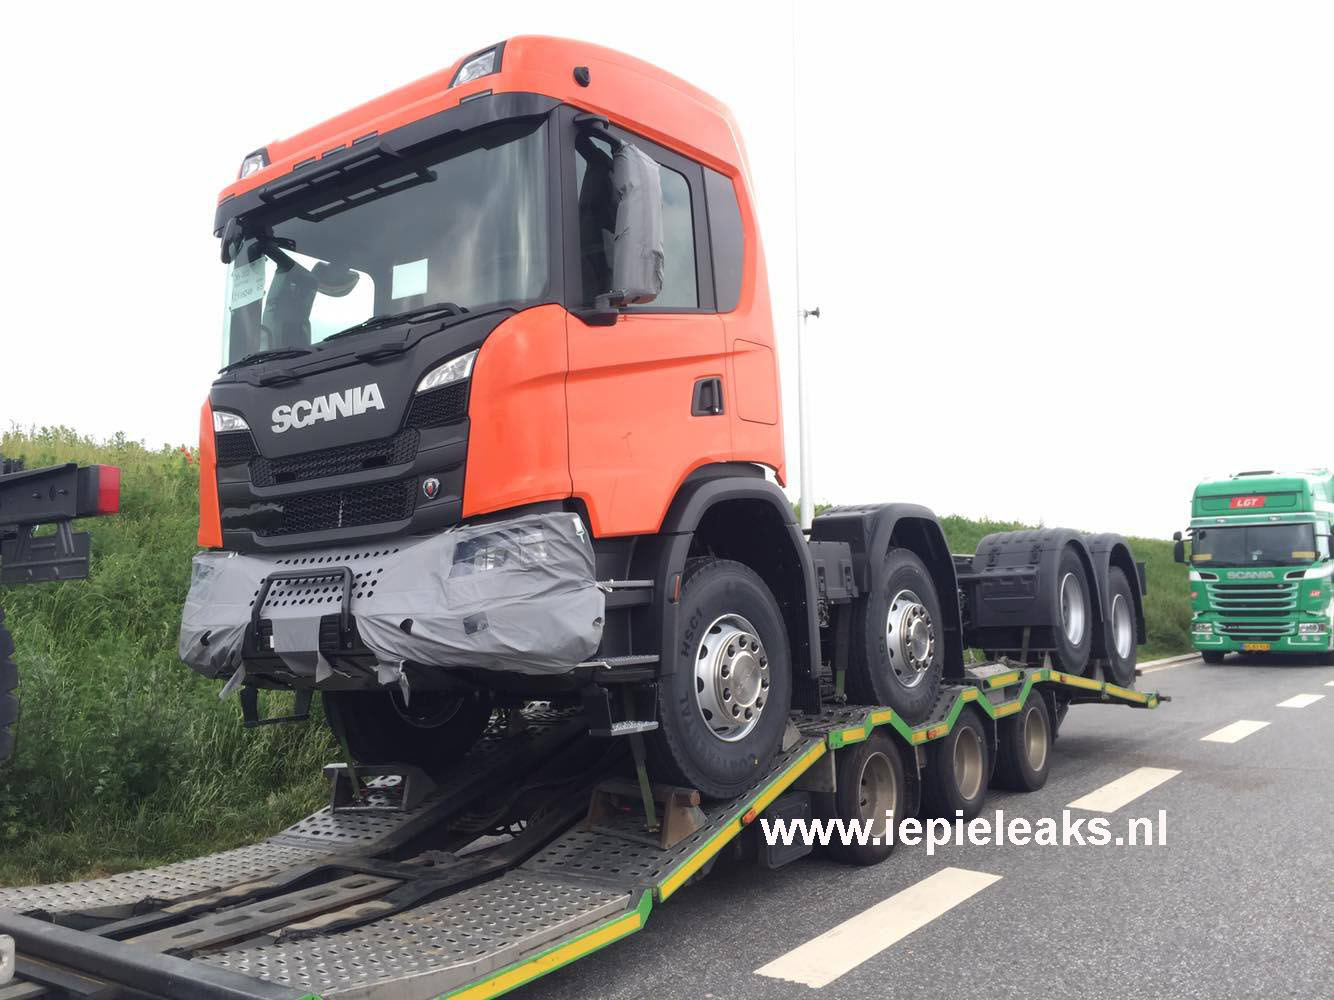 New Scania Xt Construction Range Iepieleaks